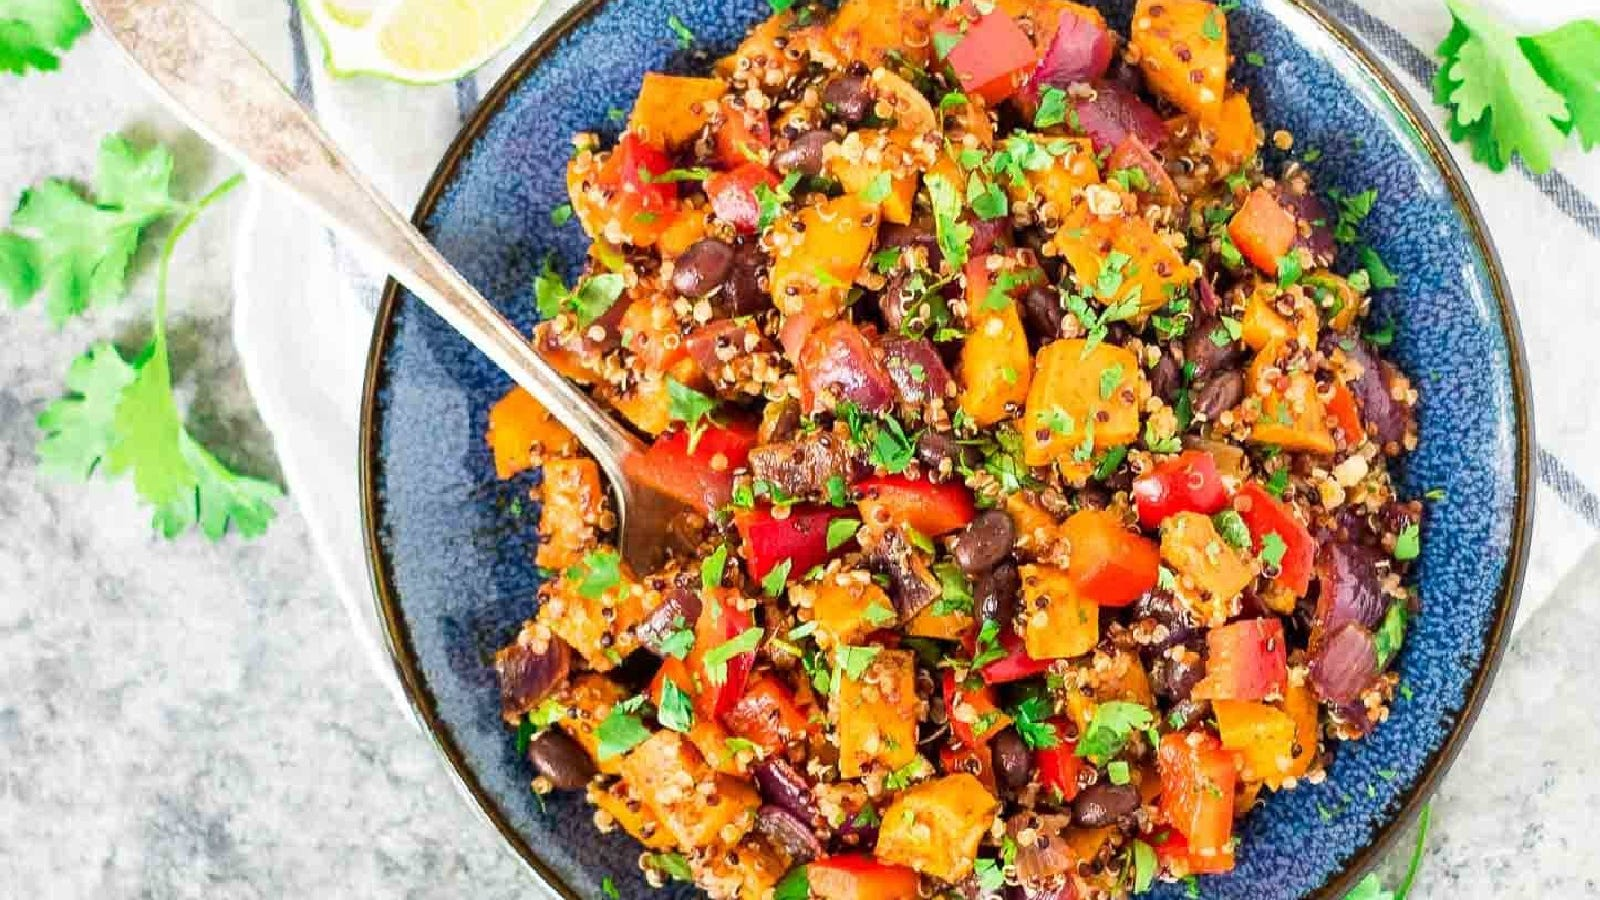 A rustic blue bowl filled with quinoa, sweet potatoes, and black beans.